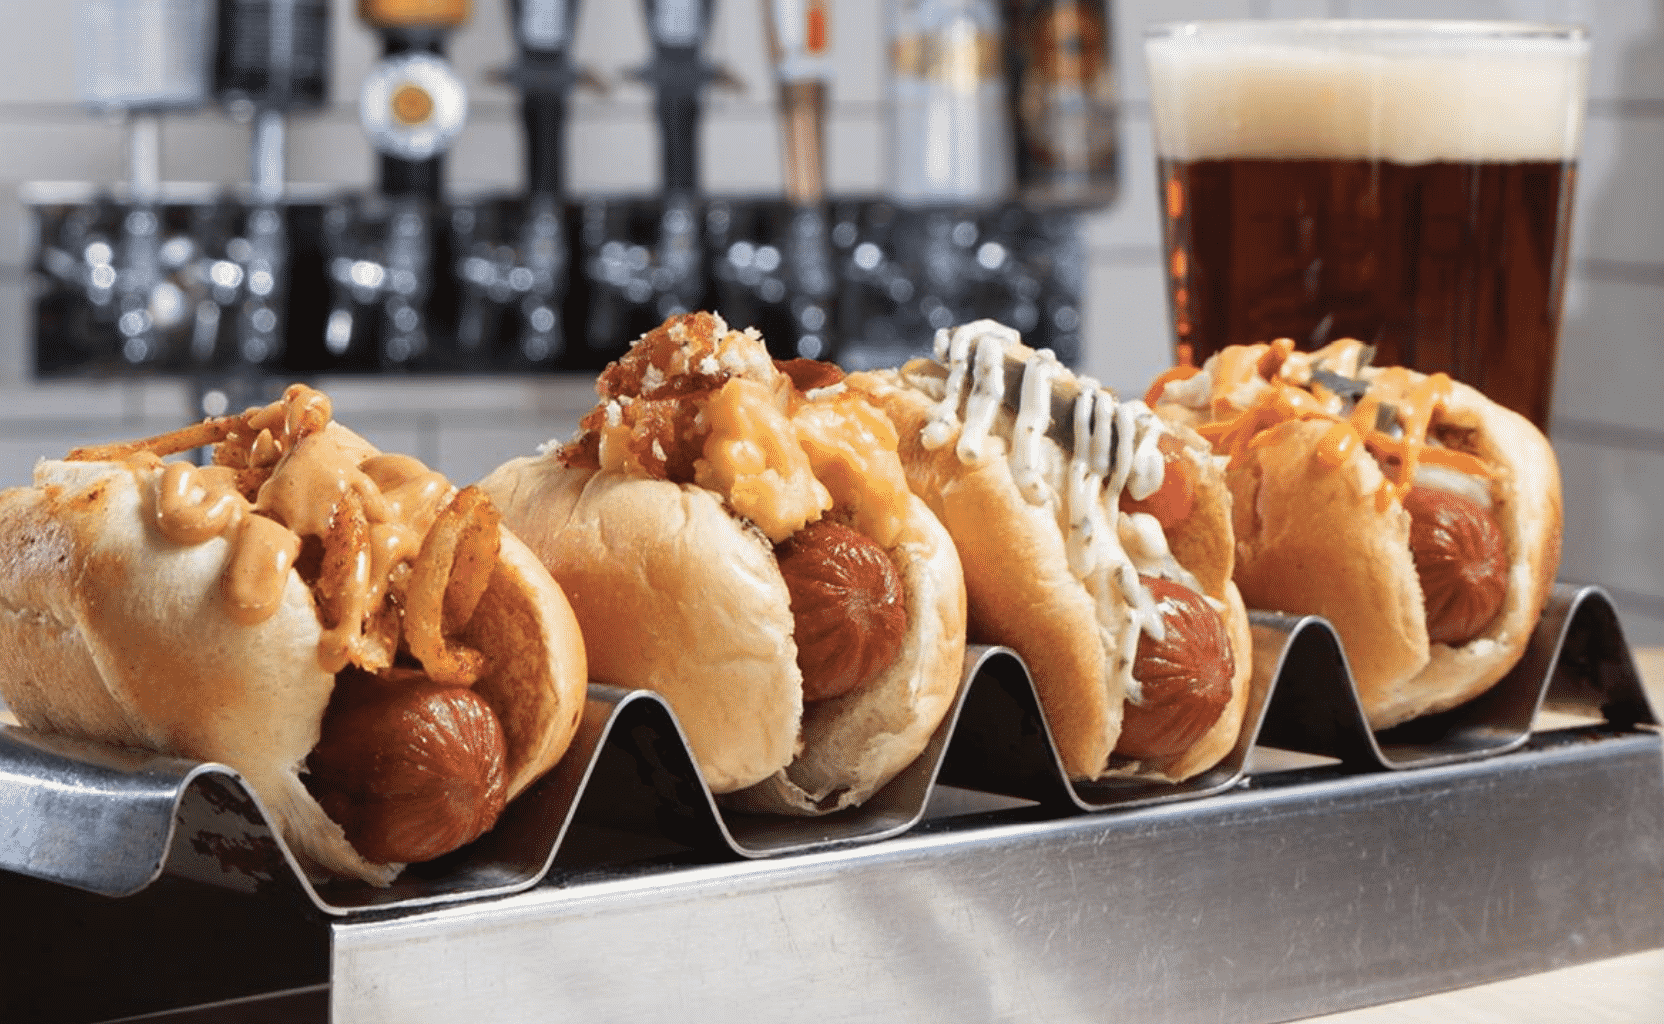 Gourmet Hot Dogs in America